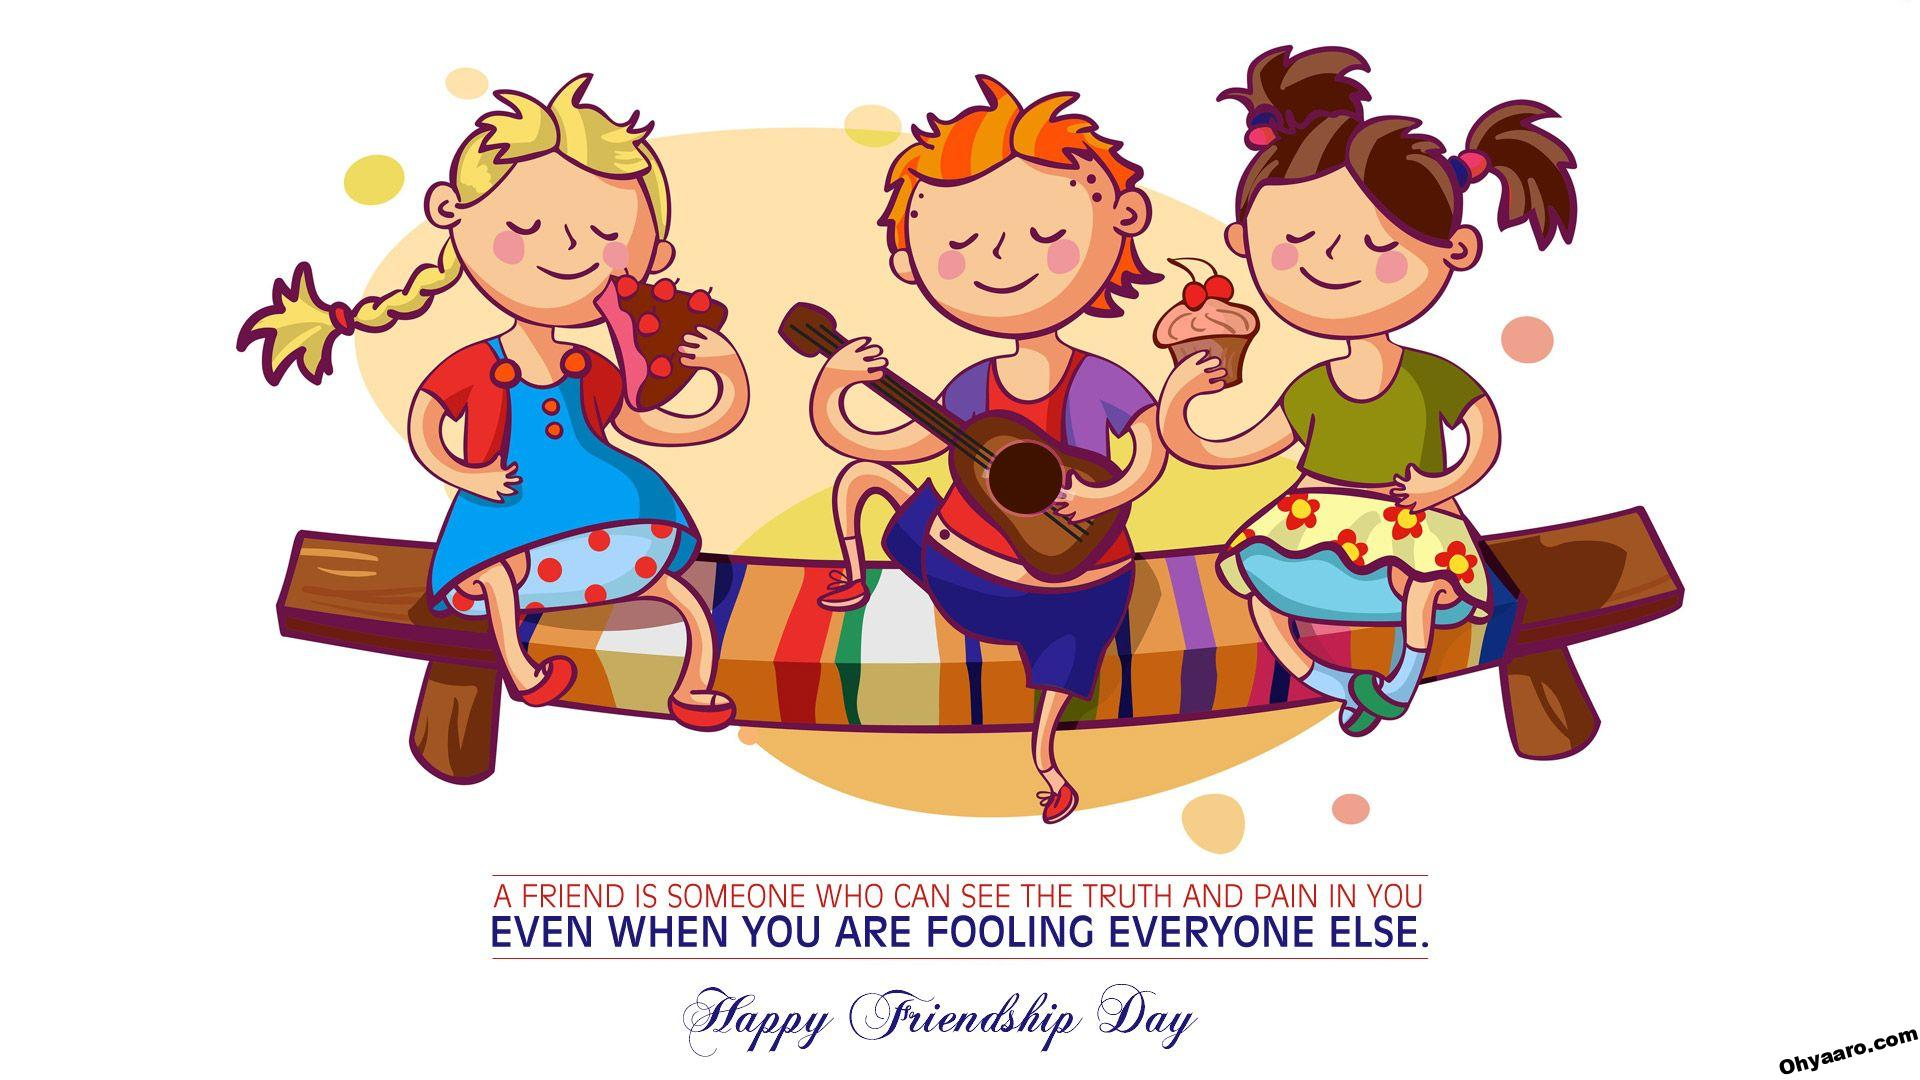 friend ship day images